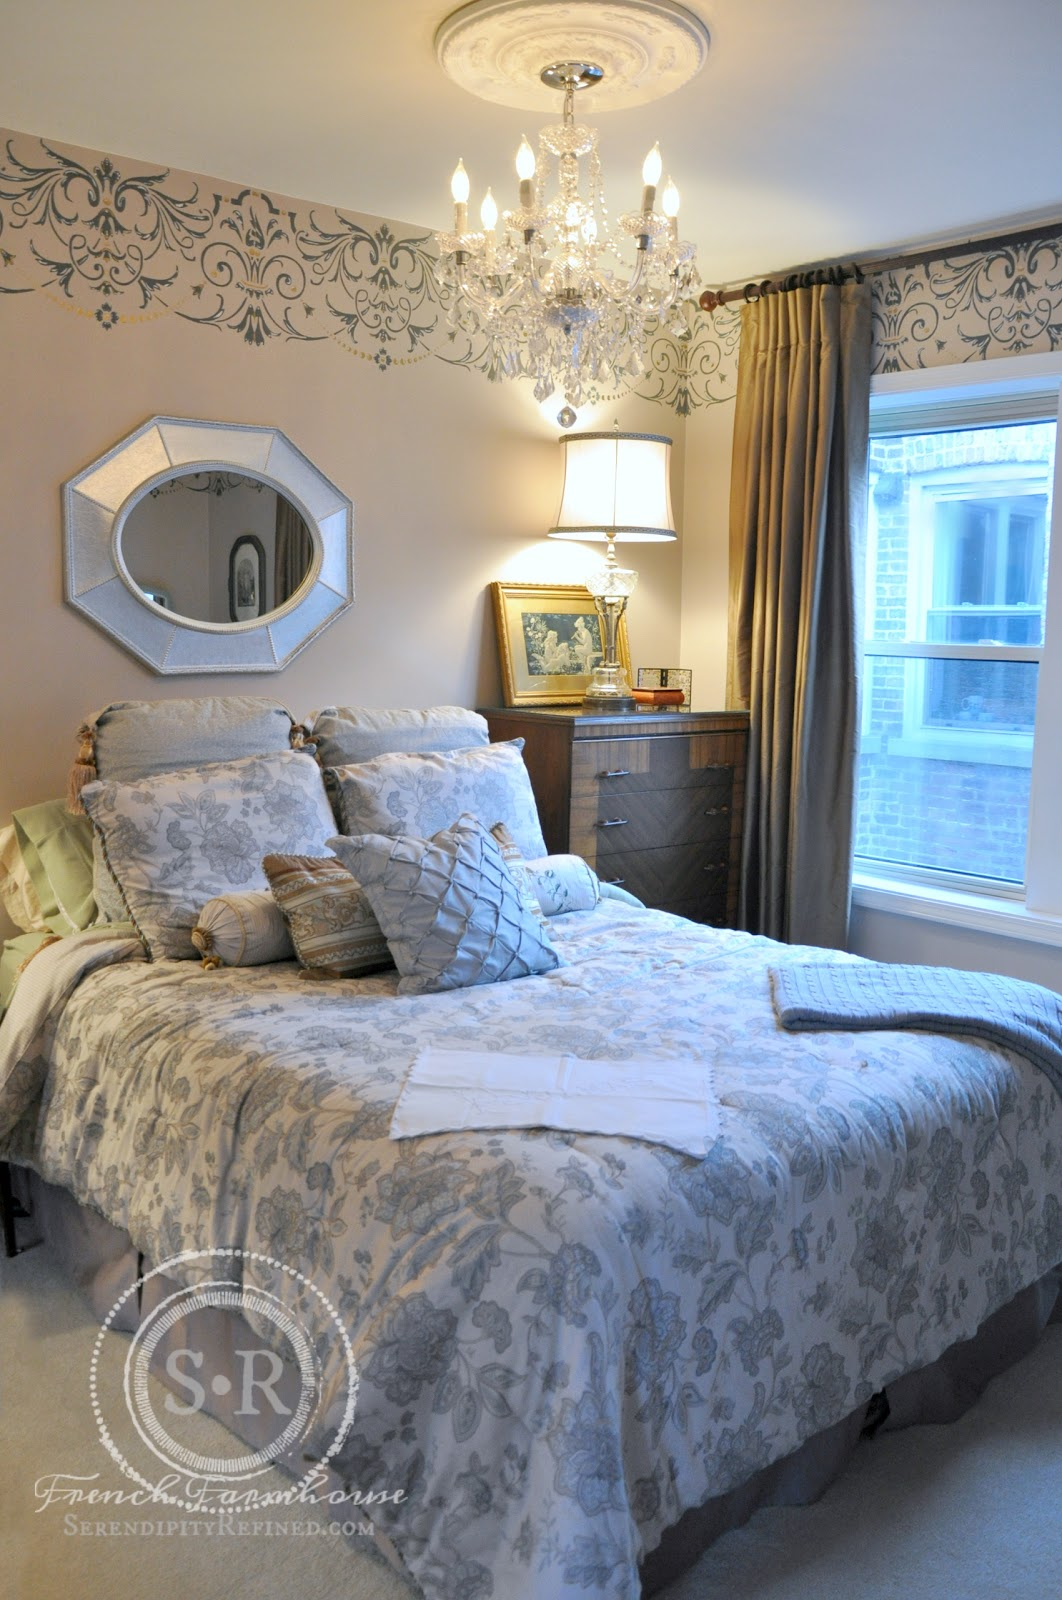 serendipity refined blog: gold and gray stenciled bedroom